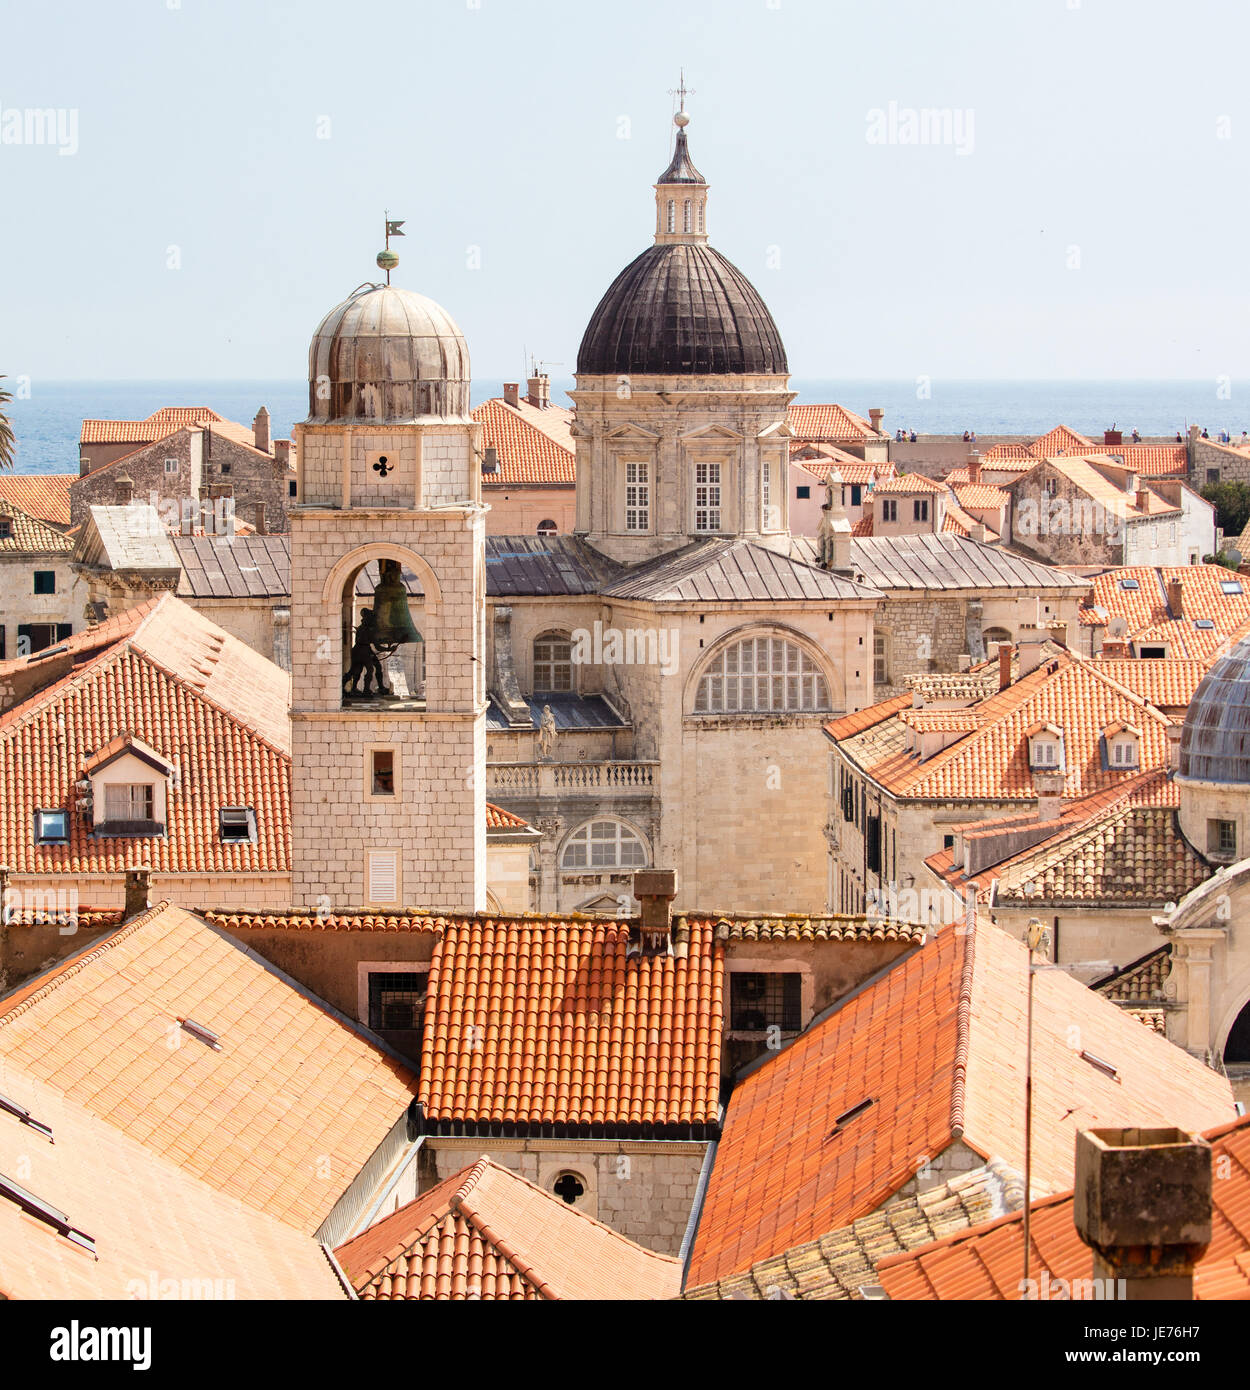 Bell tower and cathedral from the city walls of the medieval city of Dubrovnik on the Dalmation coast of Croatia Stock Photo